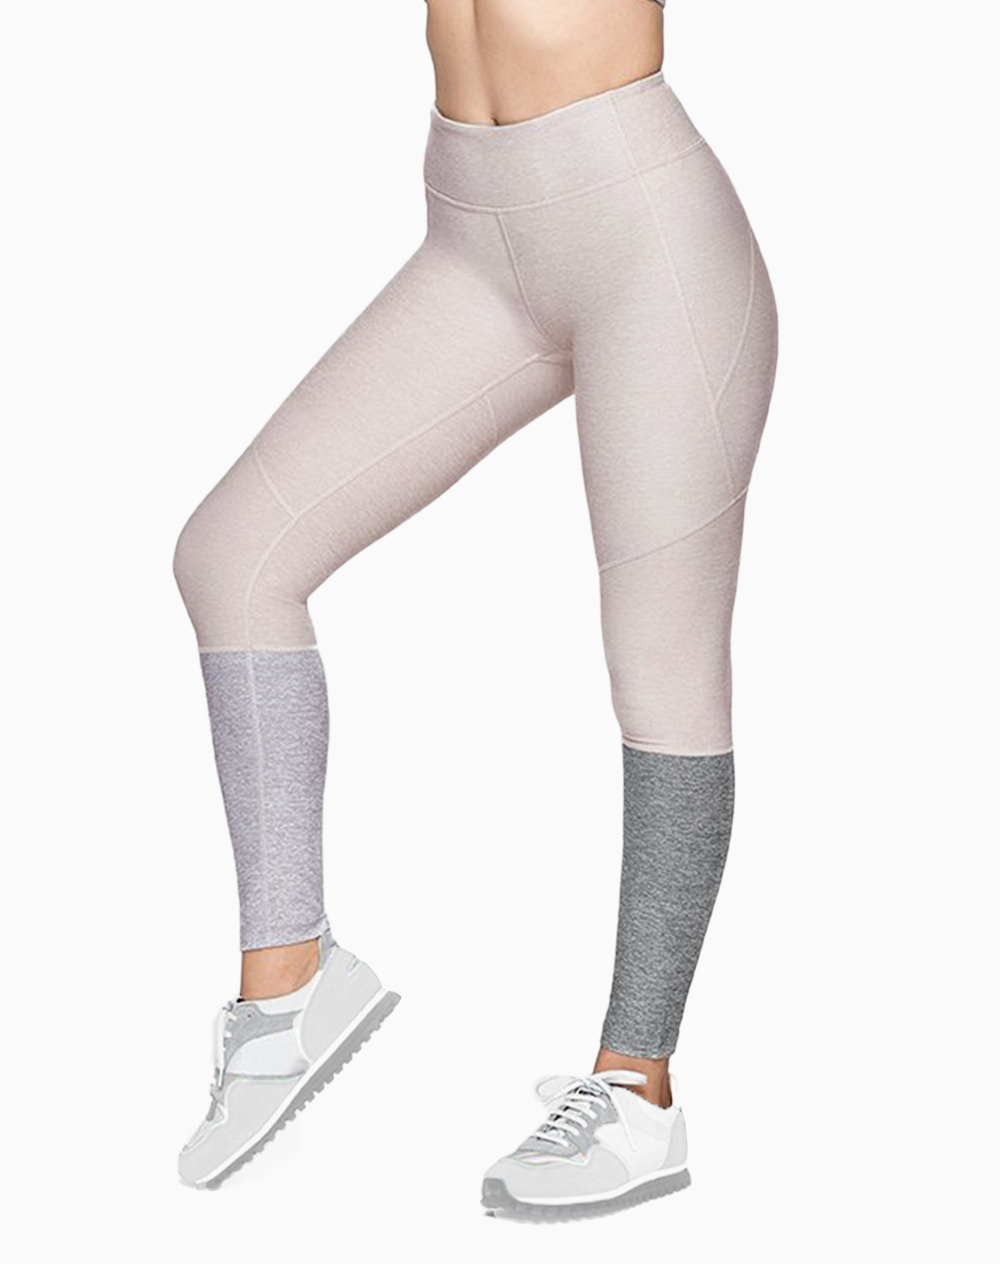 7/8 Dipped Legging in Oatmeal/Dove/Ash by Outdoor Voices | XL